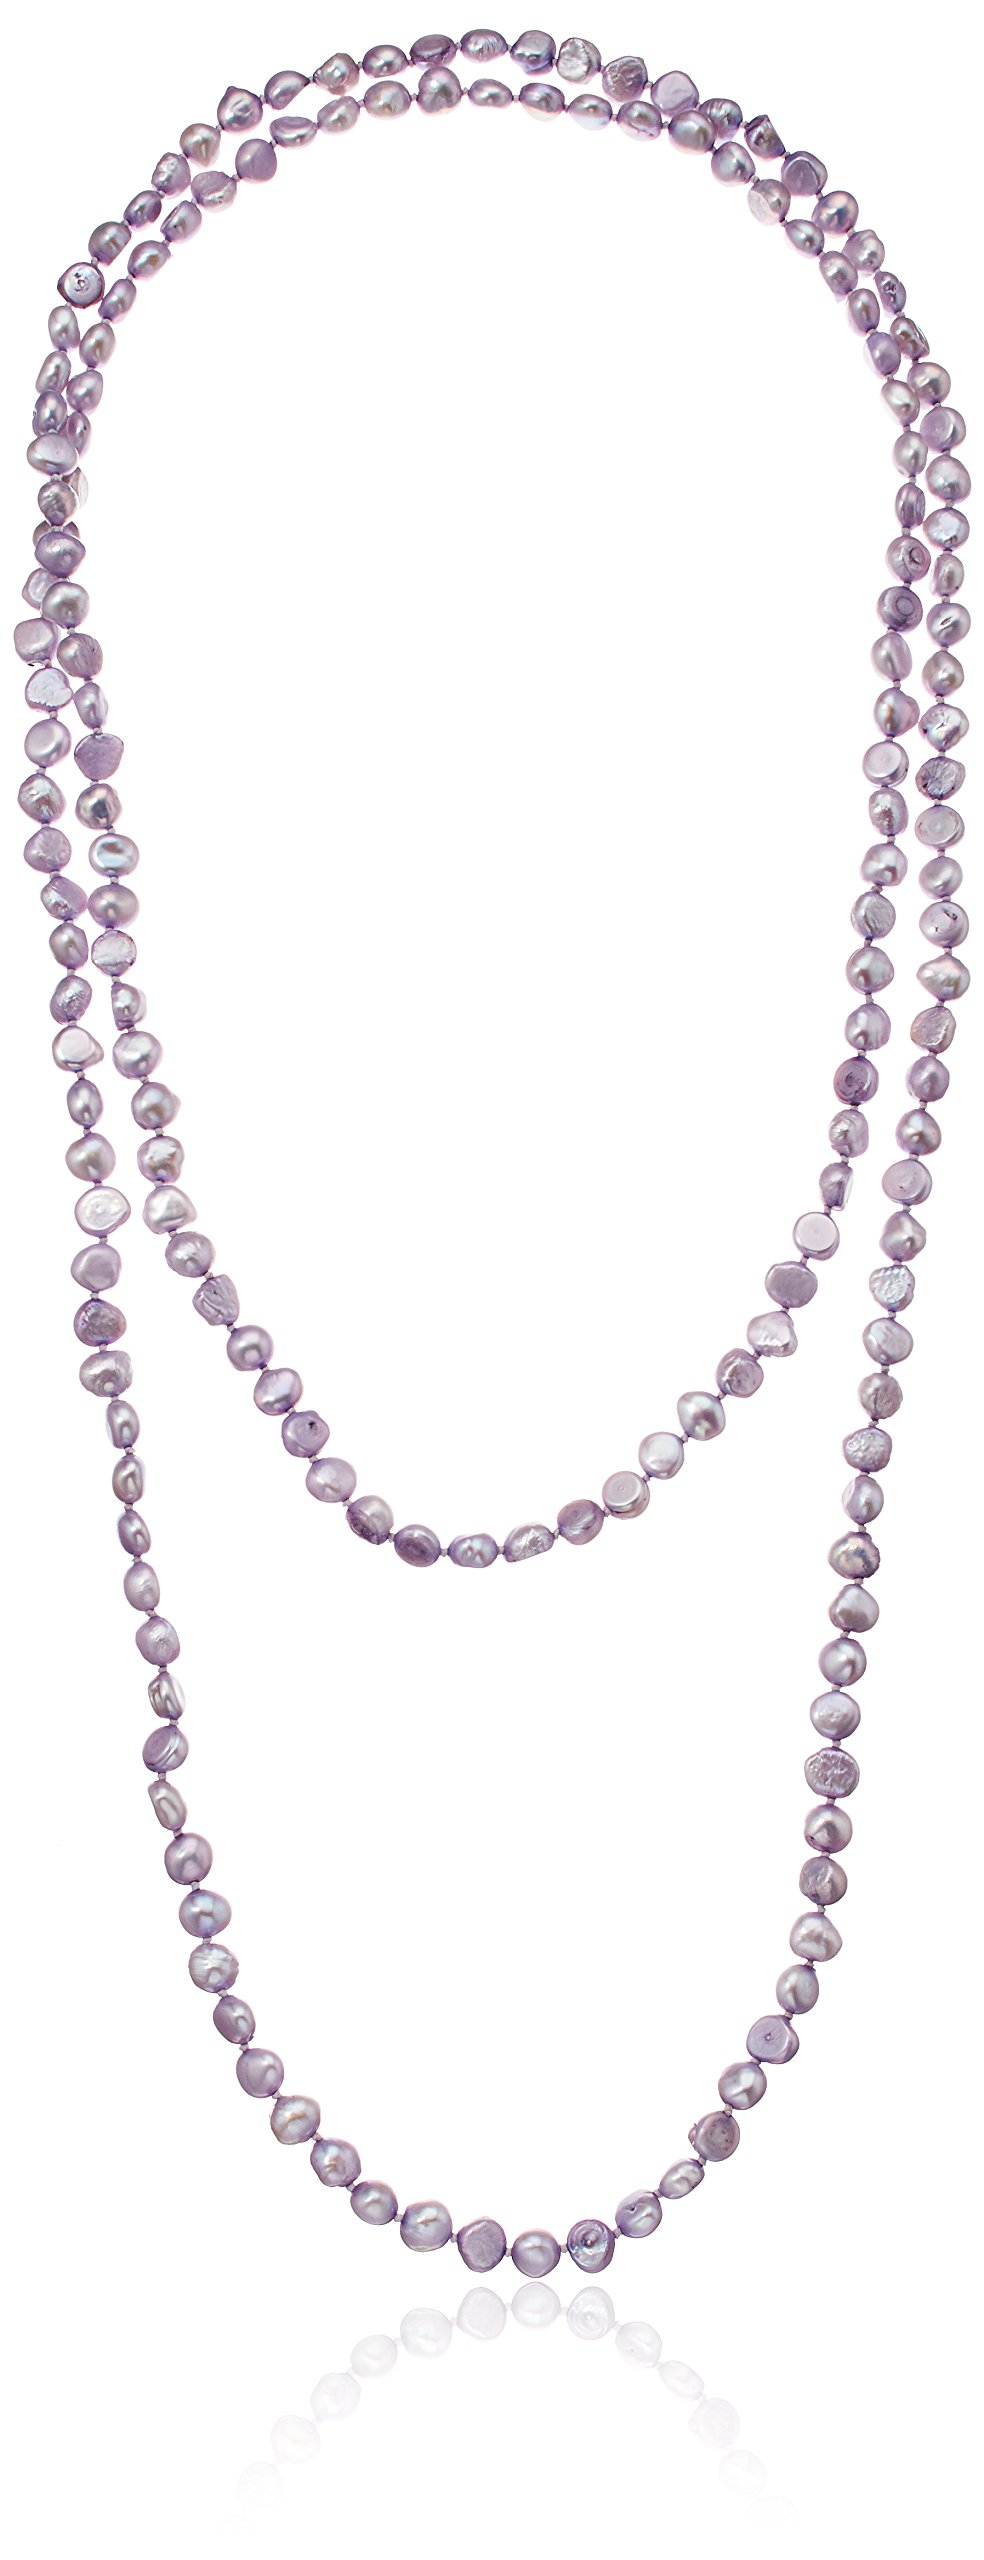 Dyed Lavender Color Baroque Freshwater Cultured Pearl Strand, 50''